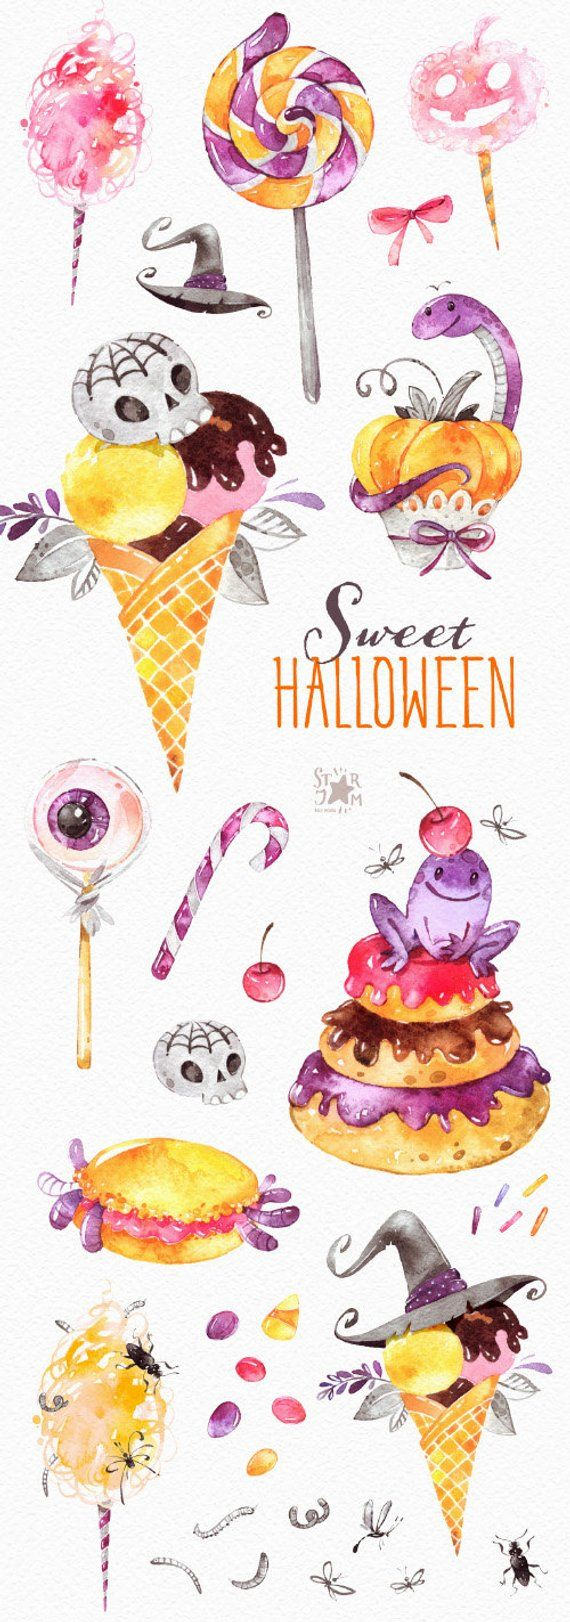 hight resolution of watercolor clipart candy ice cream lollipops cotton candy cake macaroon skul